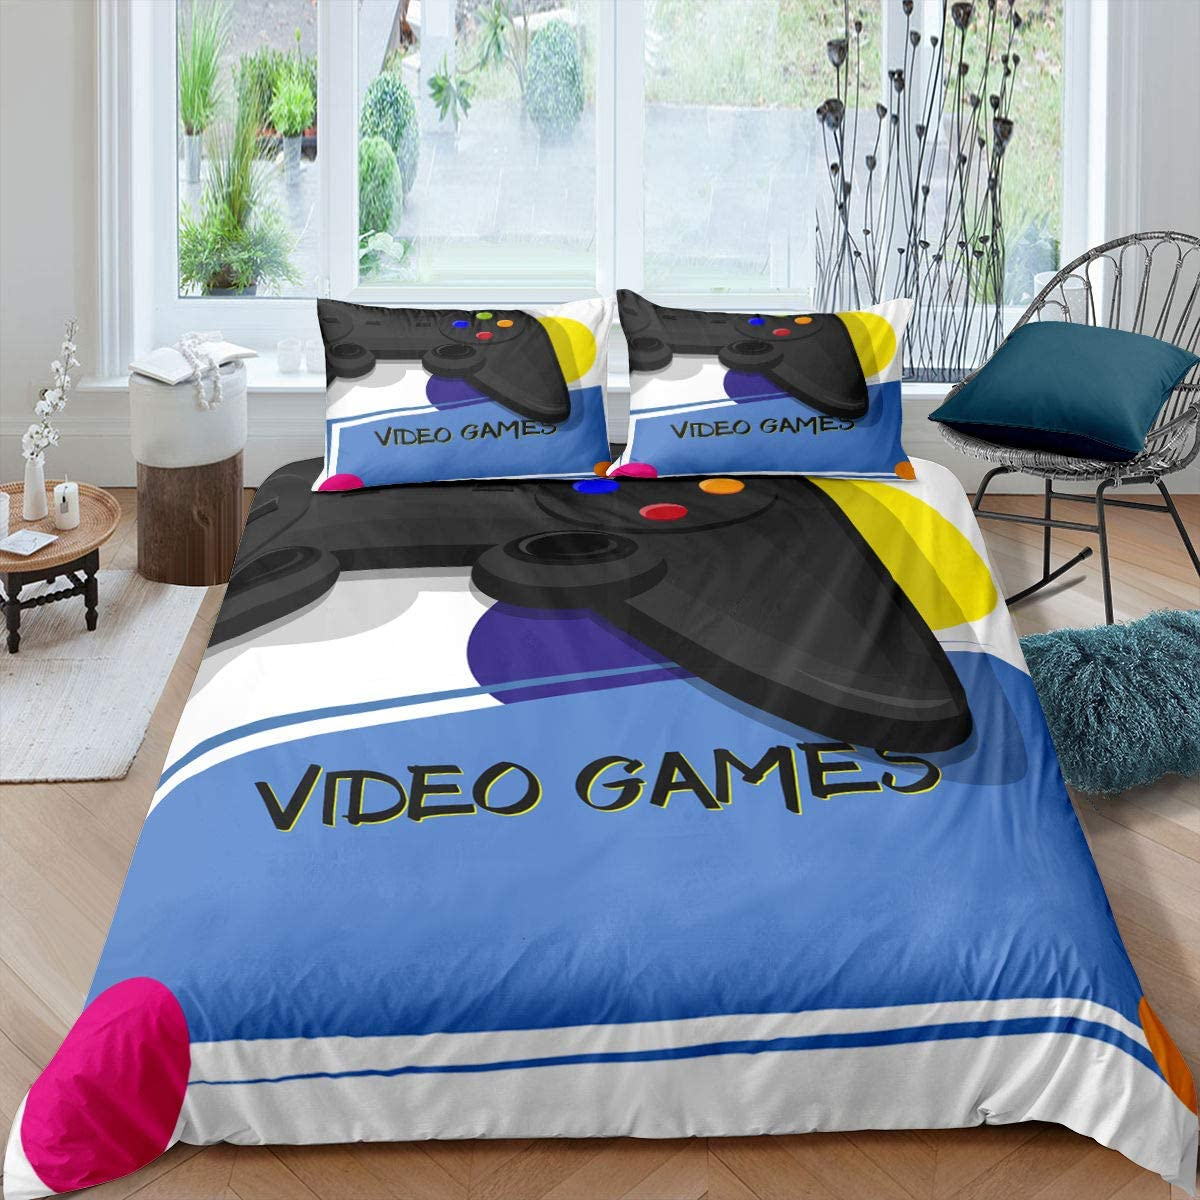 Game Bedding Set Boys Youth Modern Gamepad Comforter Cover Queen Size Video Game Controller Design Duvet Cover Gaming Console Pattern Quilt Cover For Kids Teens Adults Brushed Bedroom Décor